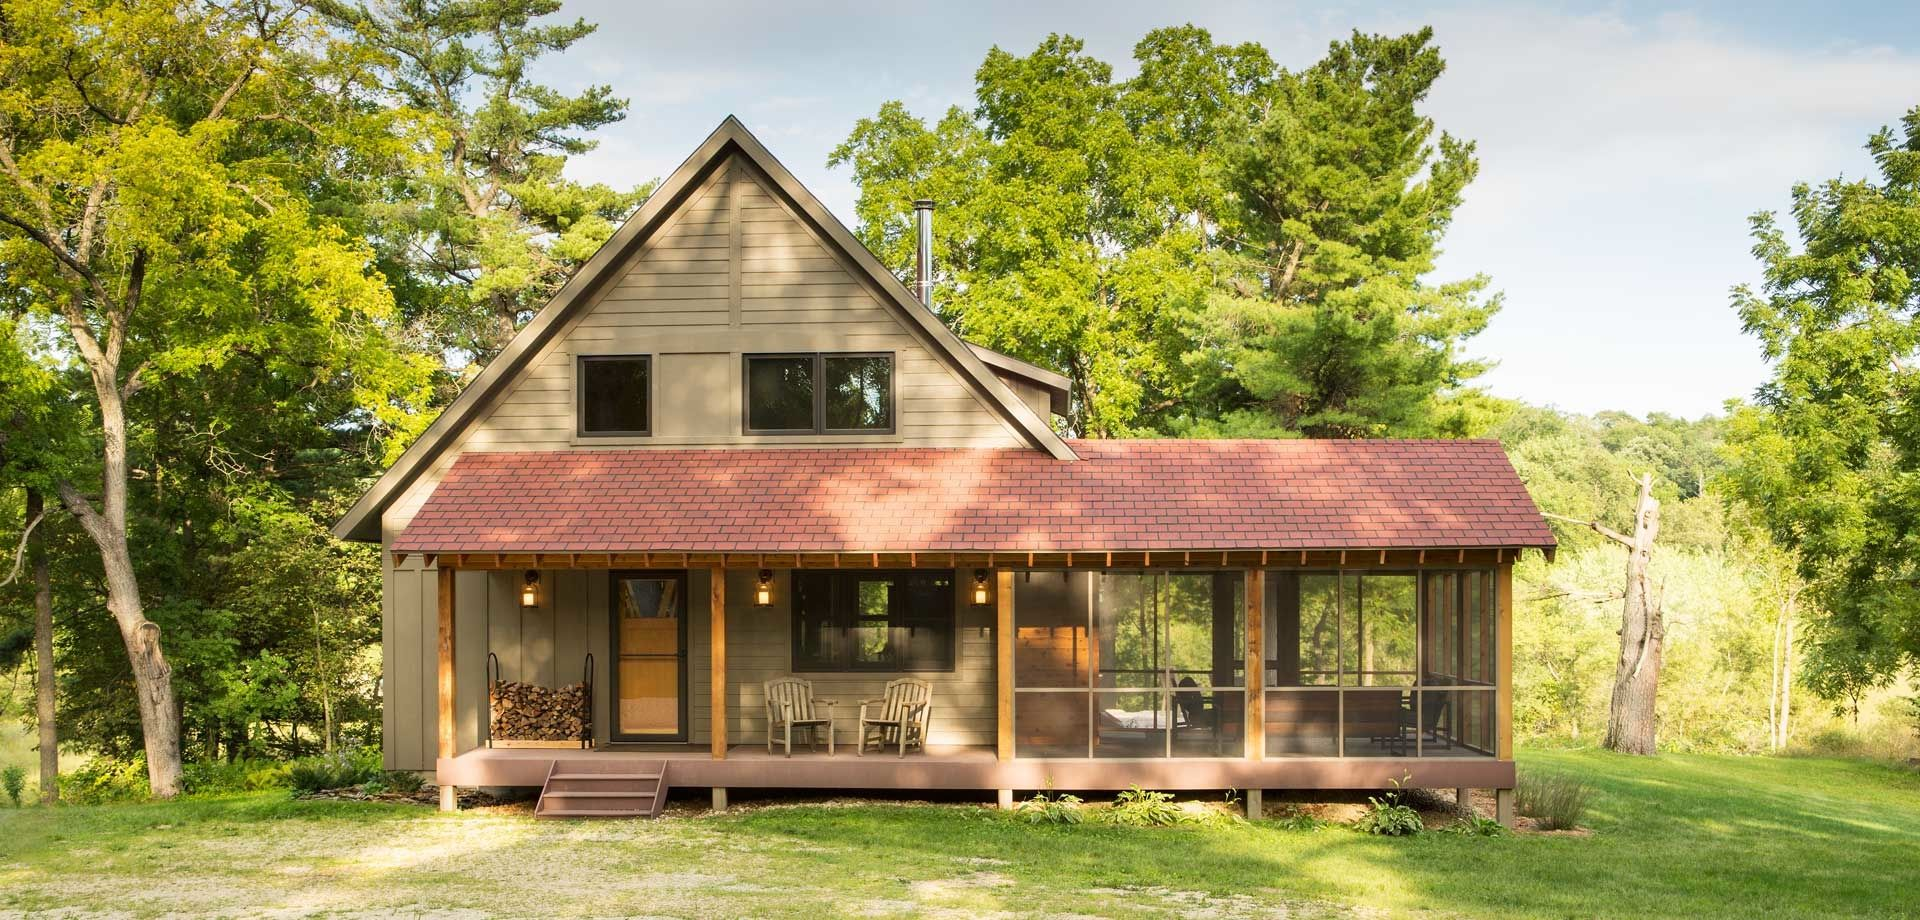 trout fishing cabin sala architects cabin pinterest cabin this is a small cabin in minnesota called the trout fishing cabin by dale mulfinger of sala architects at 1600 sq this cabin is far from tiny